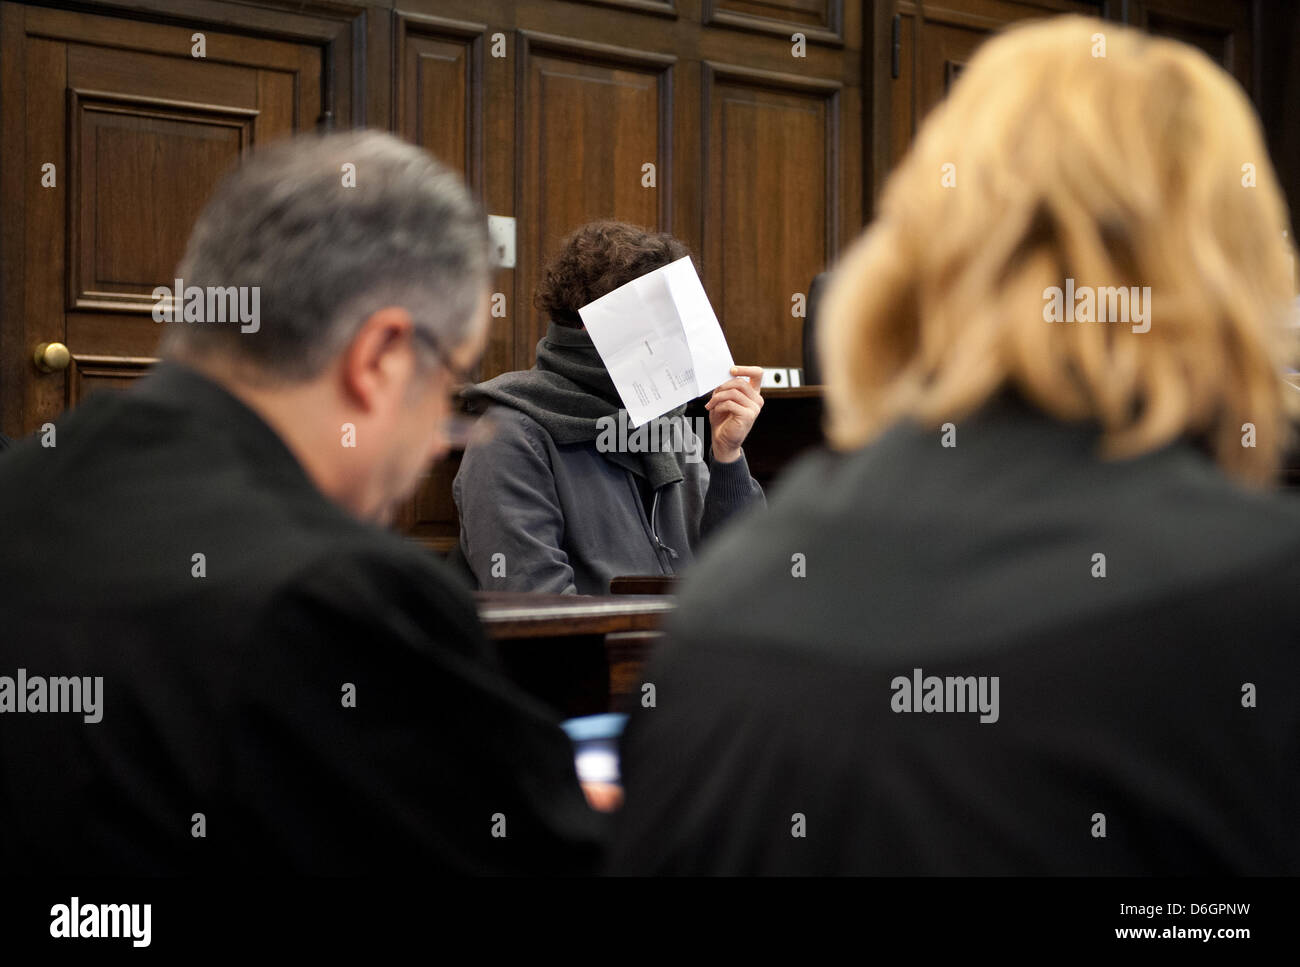 The 27 year old accused (C) holds a piece of paper in front of his face at the District Court in Hamburg, Germany, - Stock Image